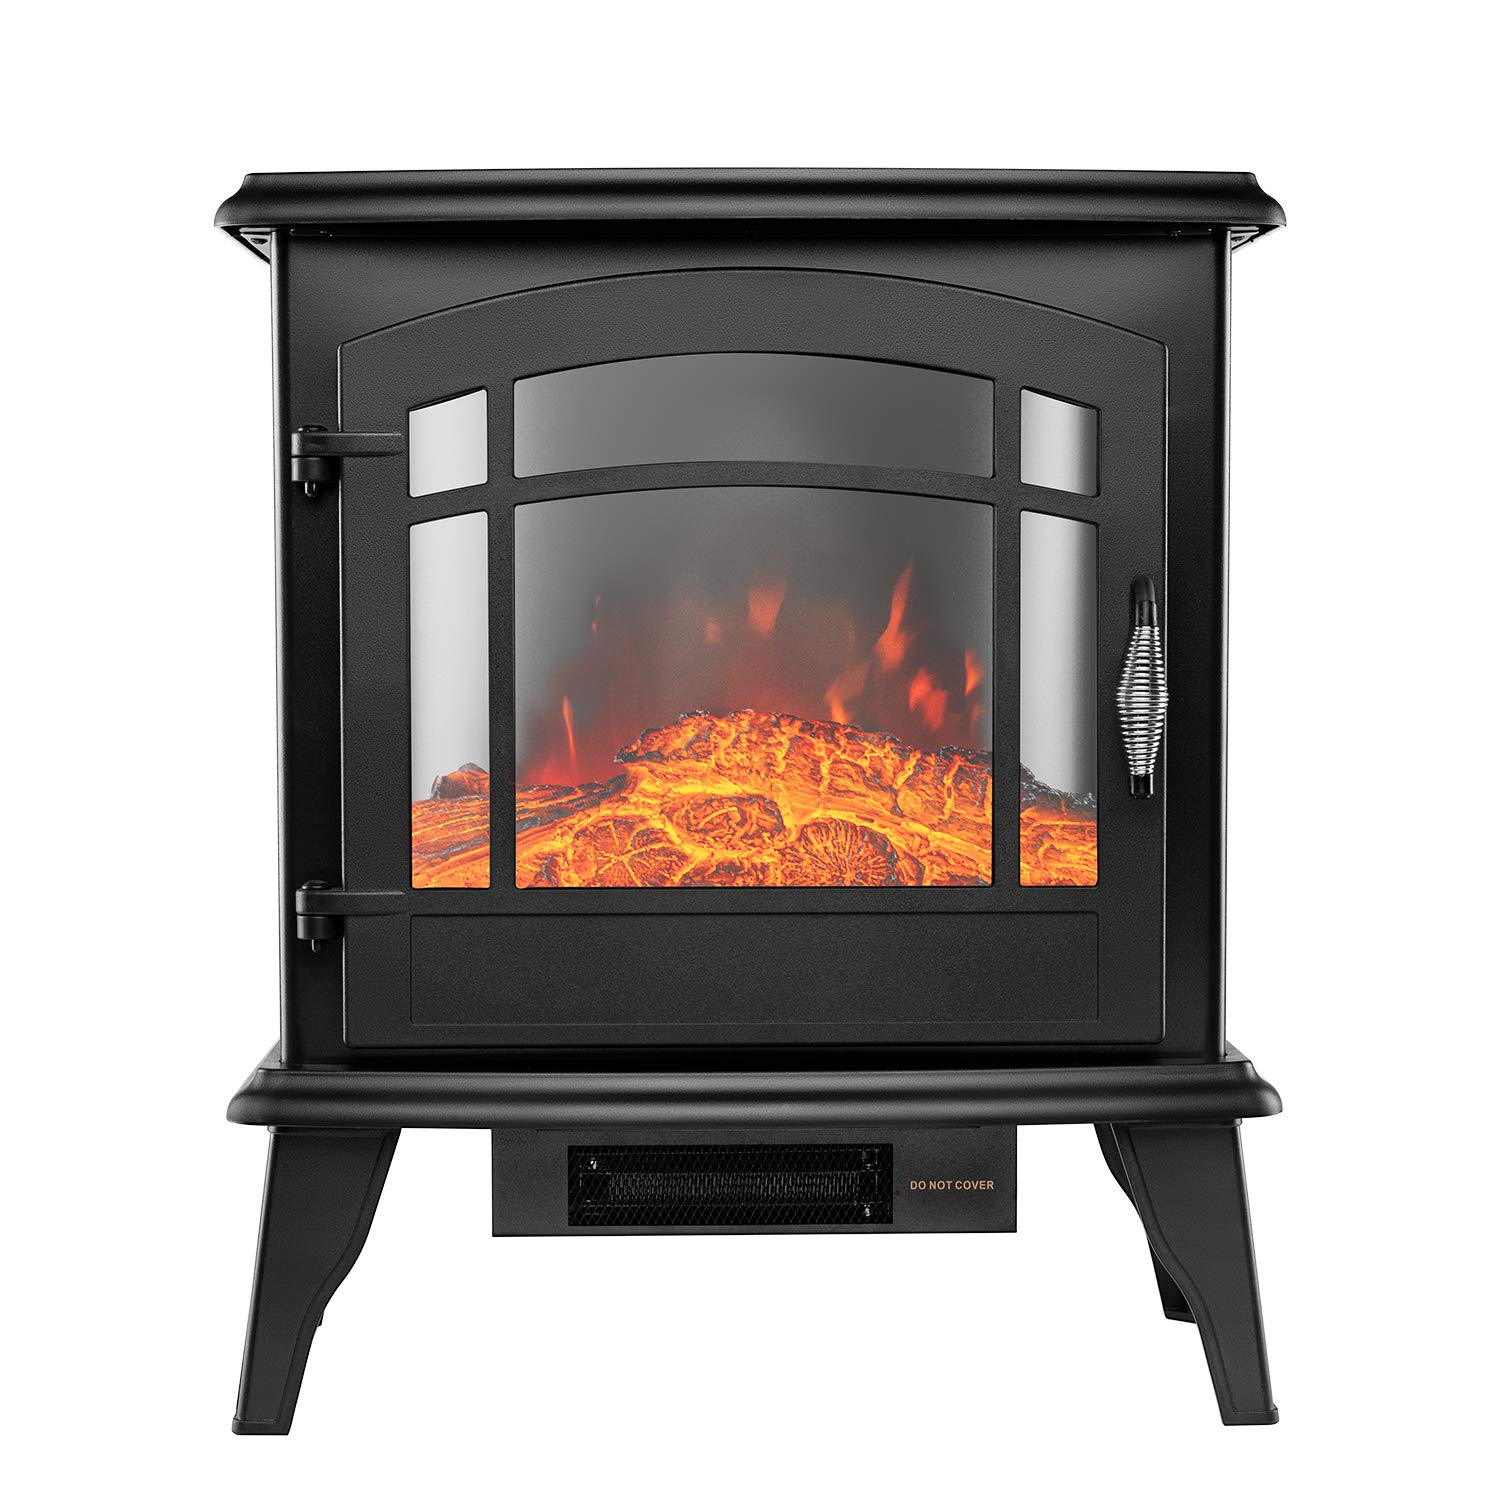 YOUNIS Portable Electric Fireplace Stove- Free Standing Electric Fireplaces, High, Low or Without Heat Control, Safety Cut-Off, Safety Tip-Over Switch, Classic Senior Black by YOUNIS